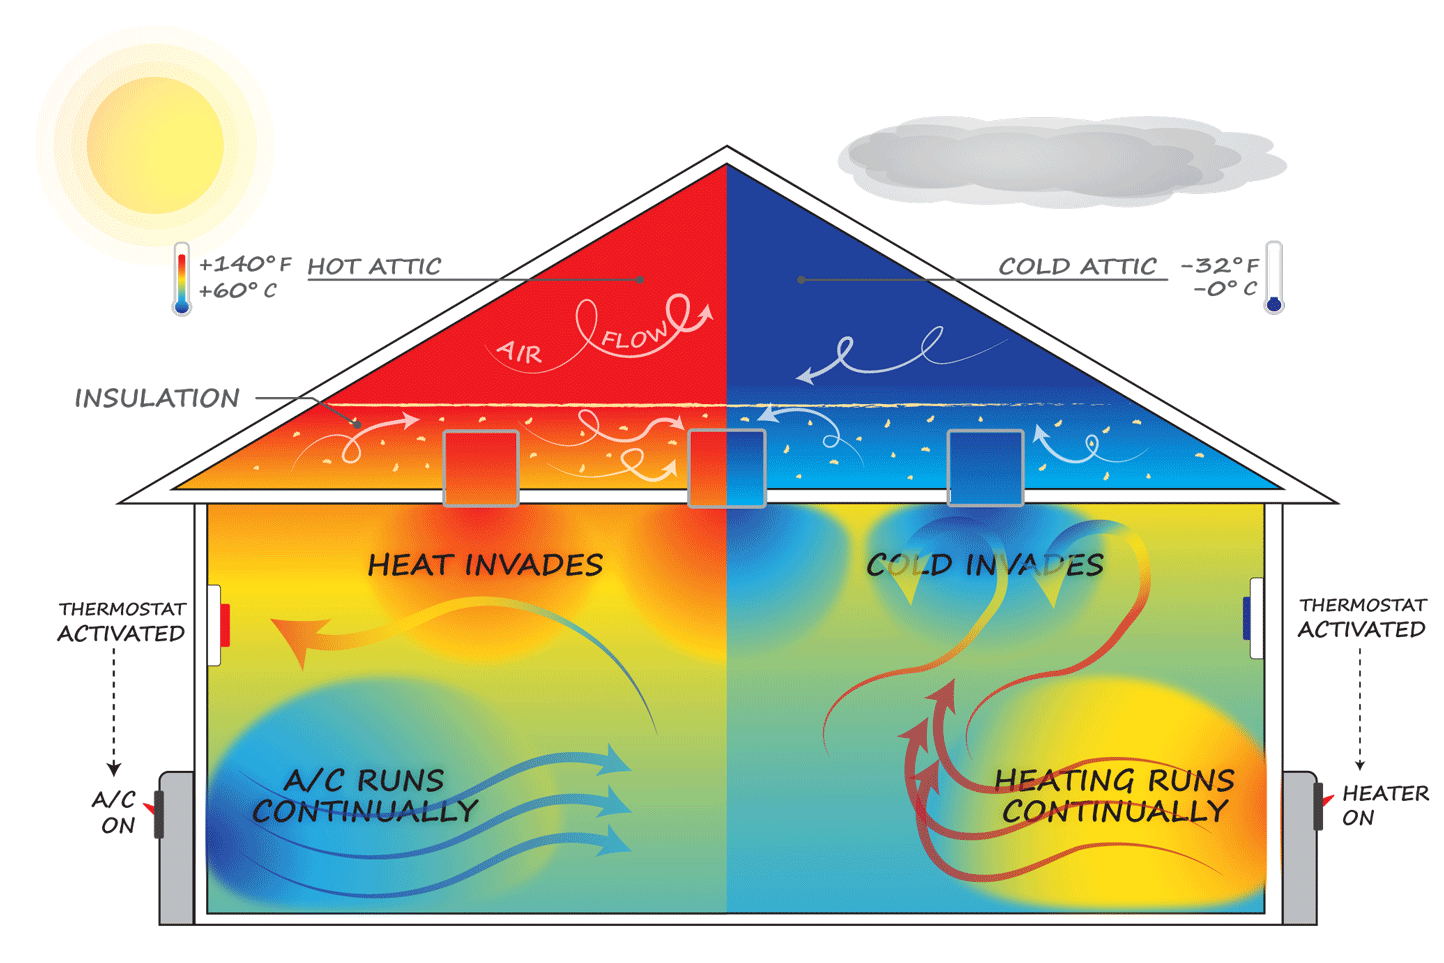 Insulation Contact airtight Can-Lights do not help the core problem of radiant energy transfer, and IC Can-Lights cause unintended problems unless treated with CanCoverIt.